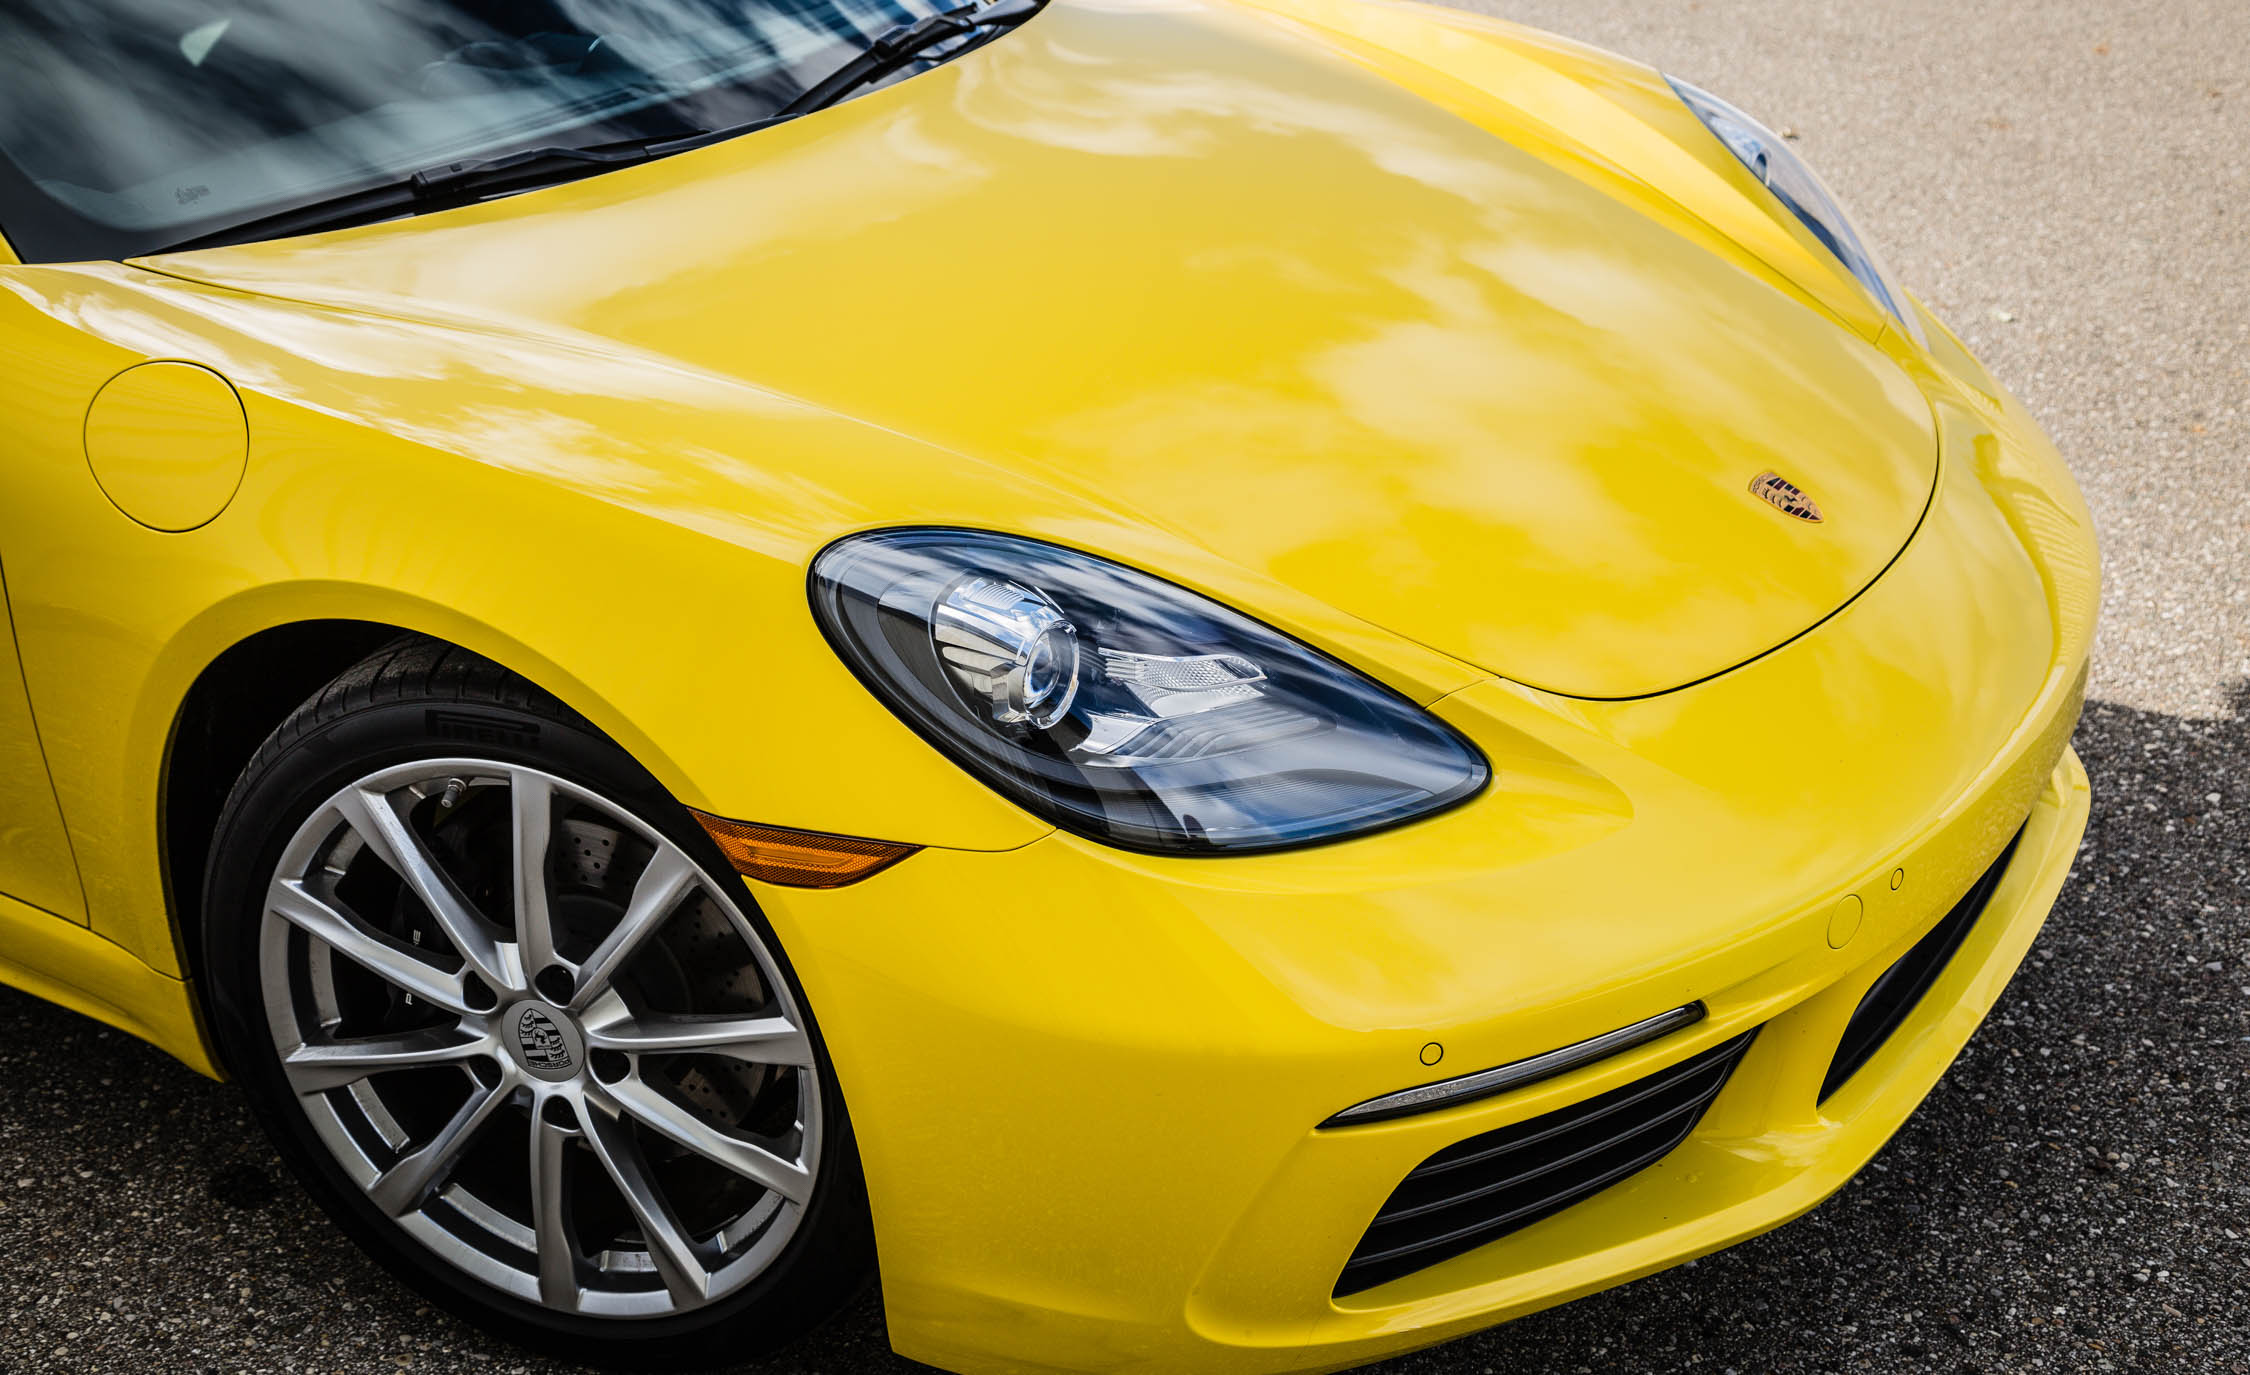 2017 Porsche 718 Boxster Exterior View Headlight And Wheel Trim (View 12 of 71)